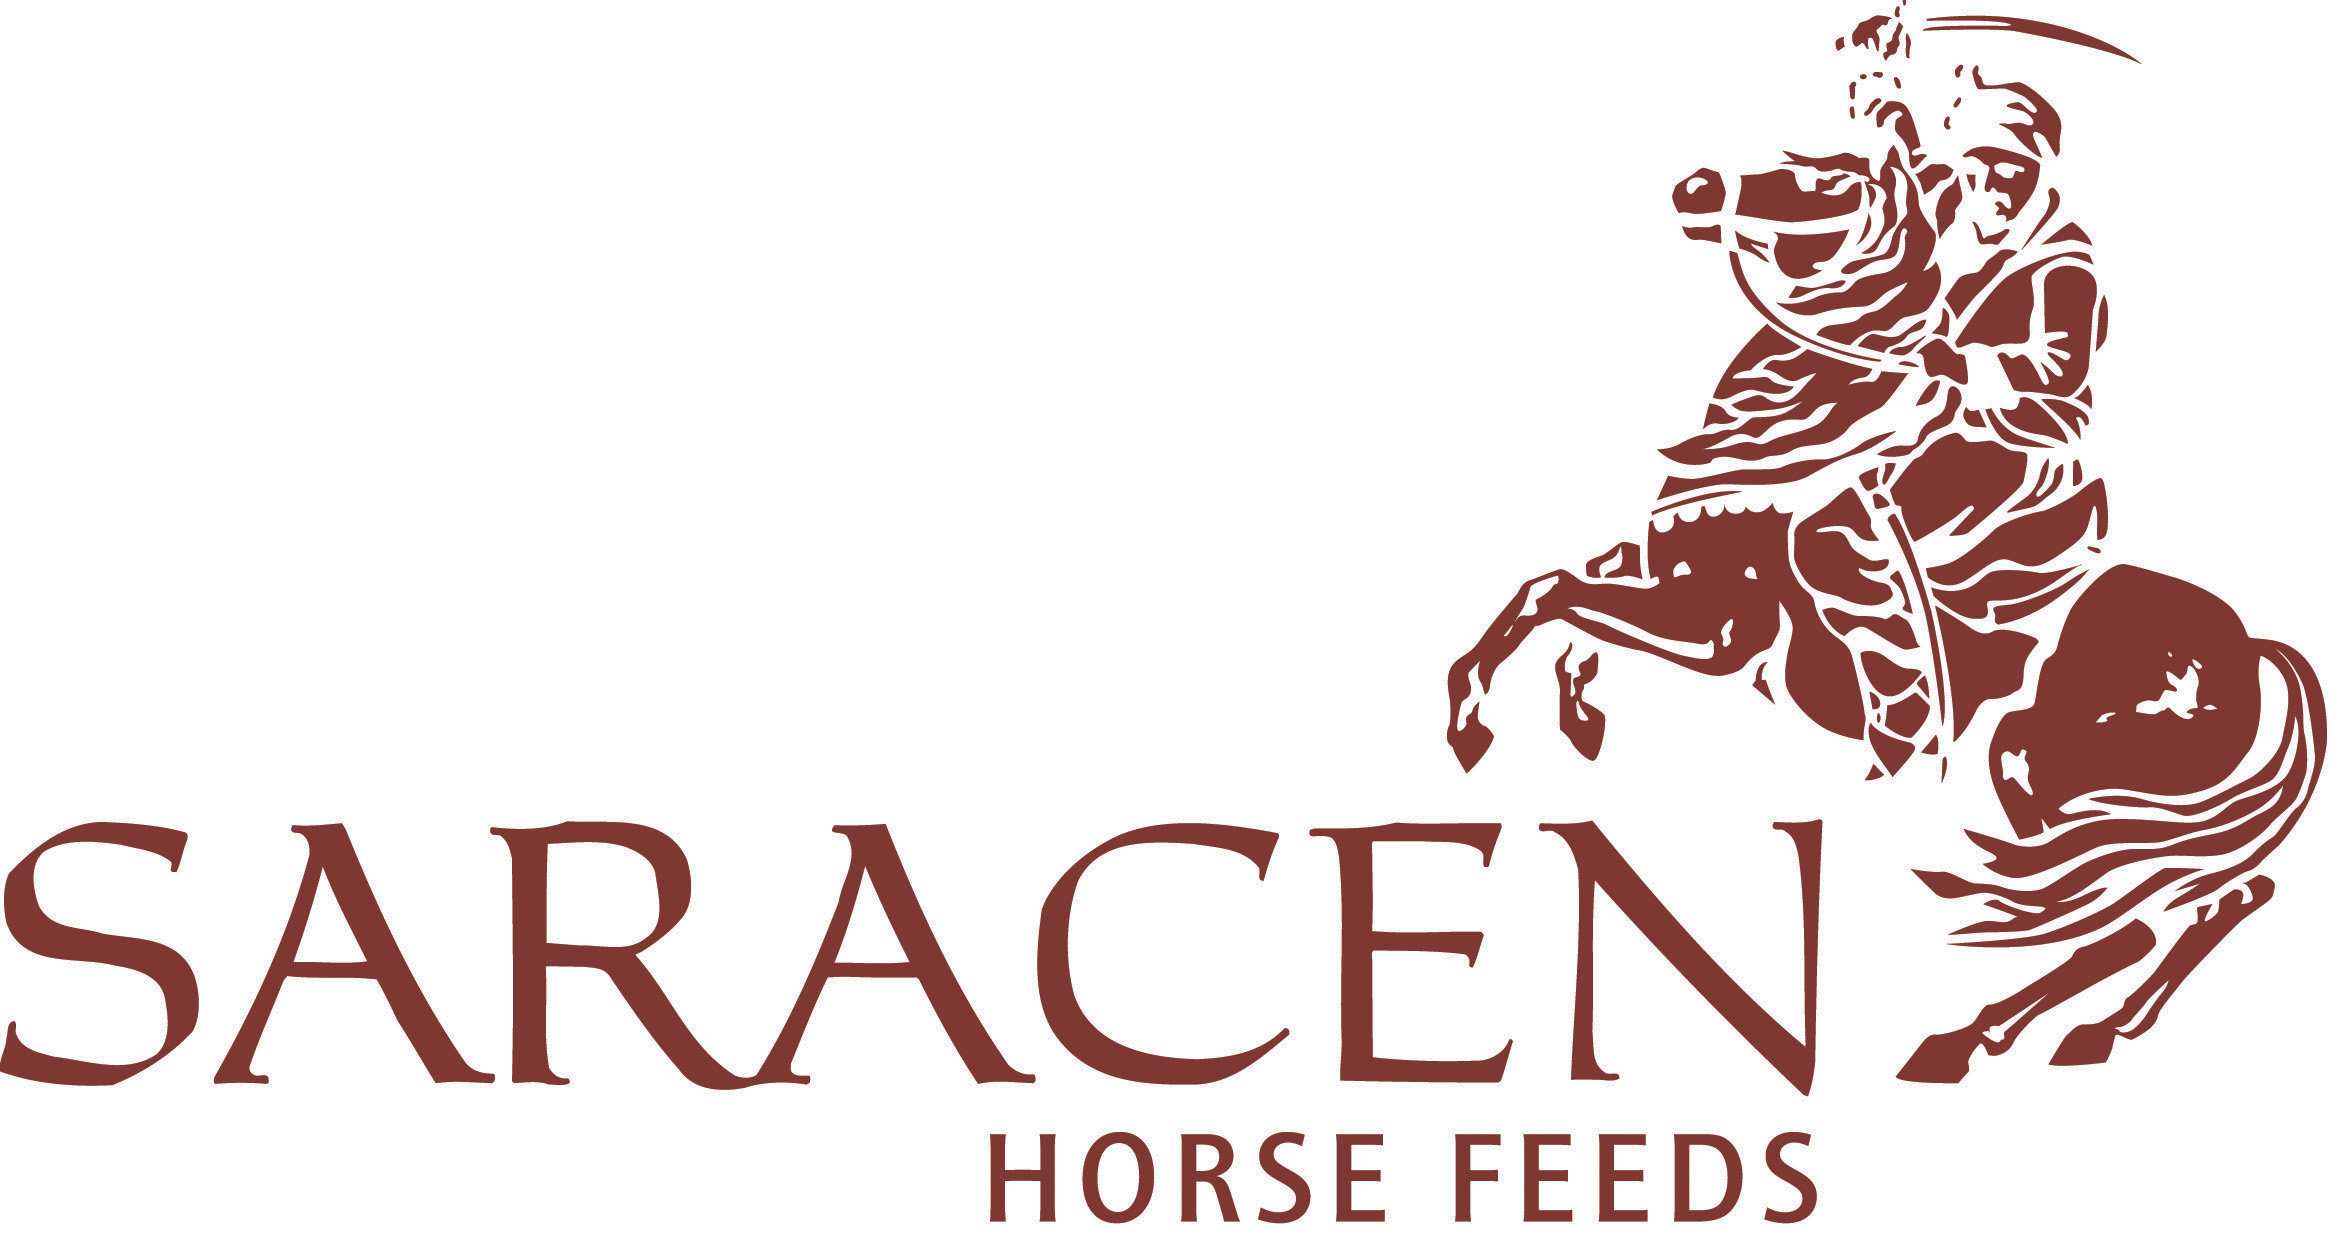 Saracen Horse Feeds Ltd.